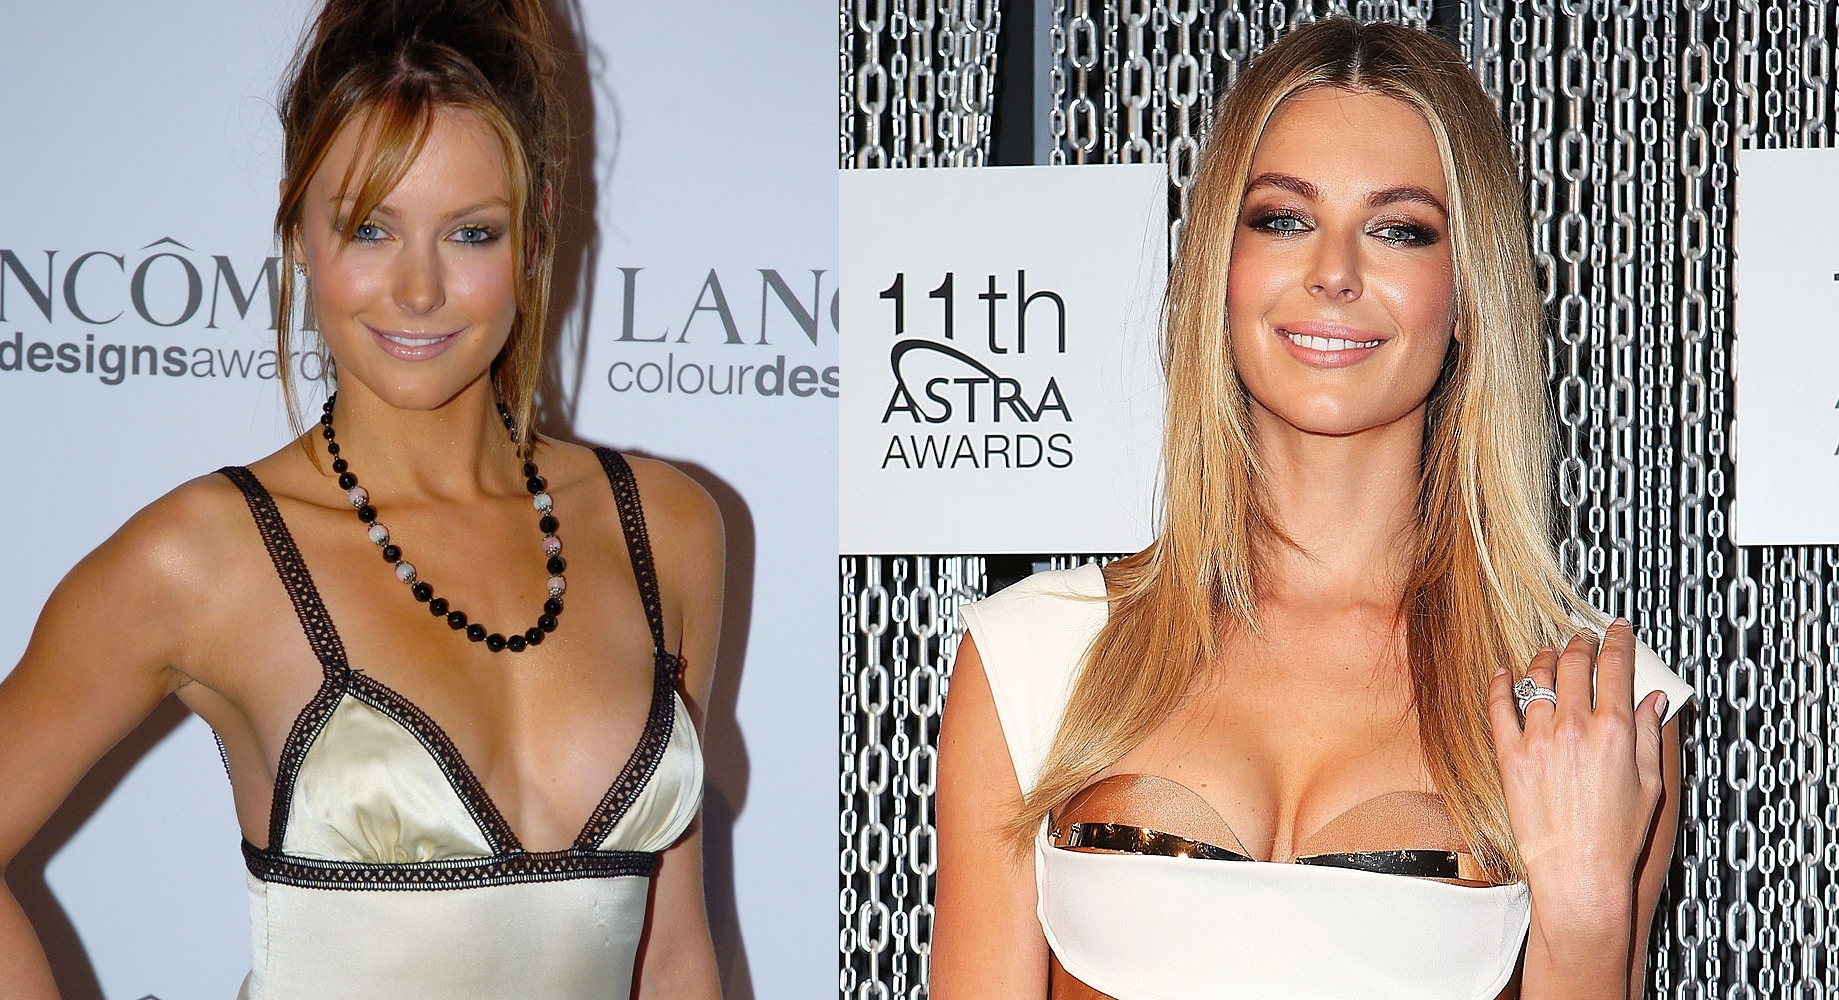 Jennifer Hawkins Plastic Surgery Before and After Pictures, Photos 3-horz